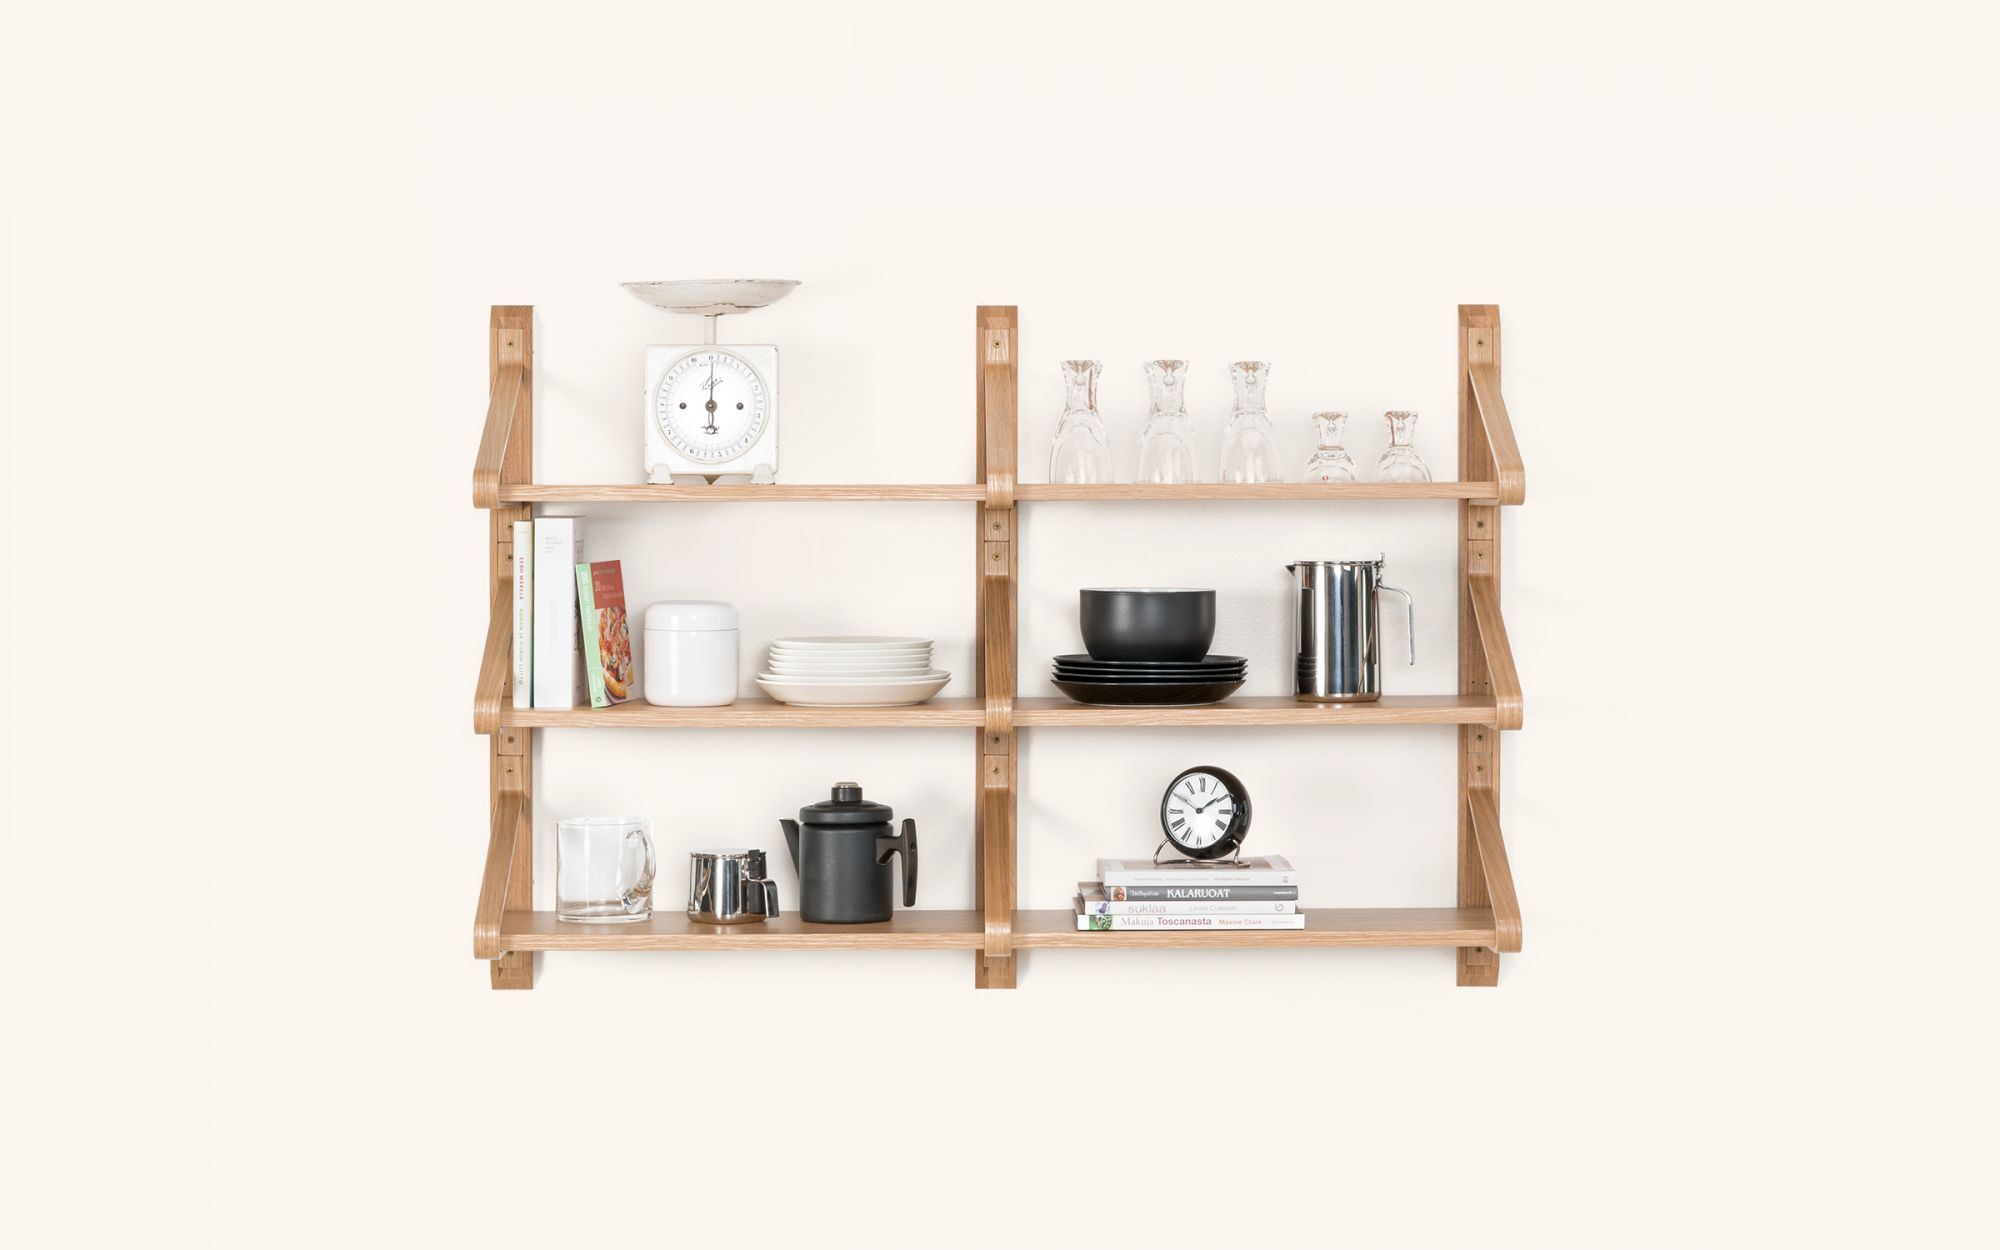 Linkki-shelf unit